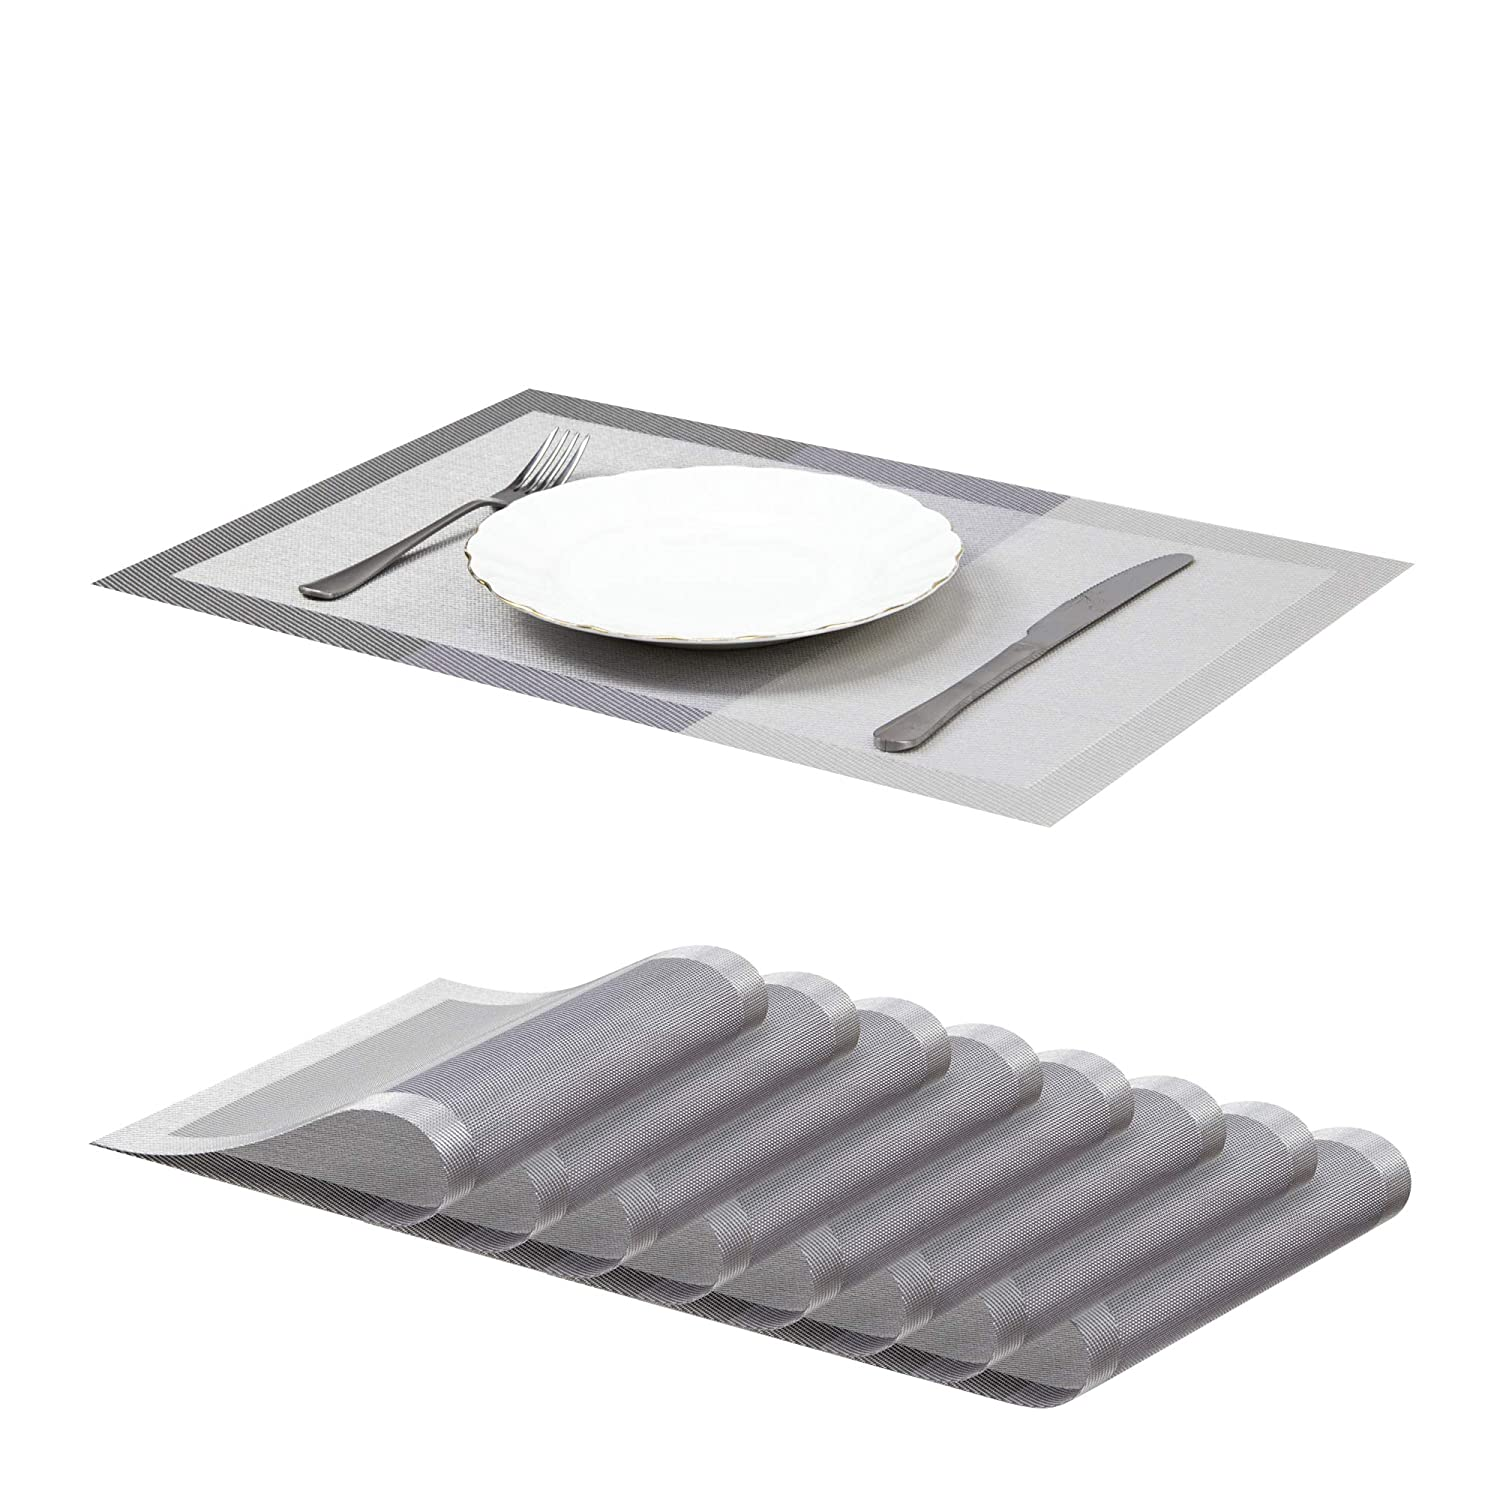 """Jujin 17.7/"""" Placemats Set of 8 Non-Slip Washable PVC Heat Resistant Table Mats for Dining Table Gray"""